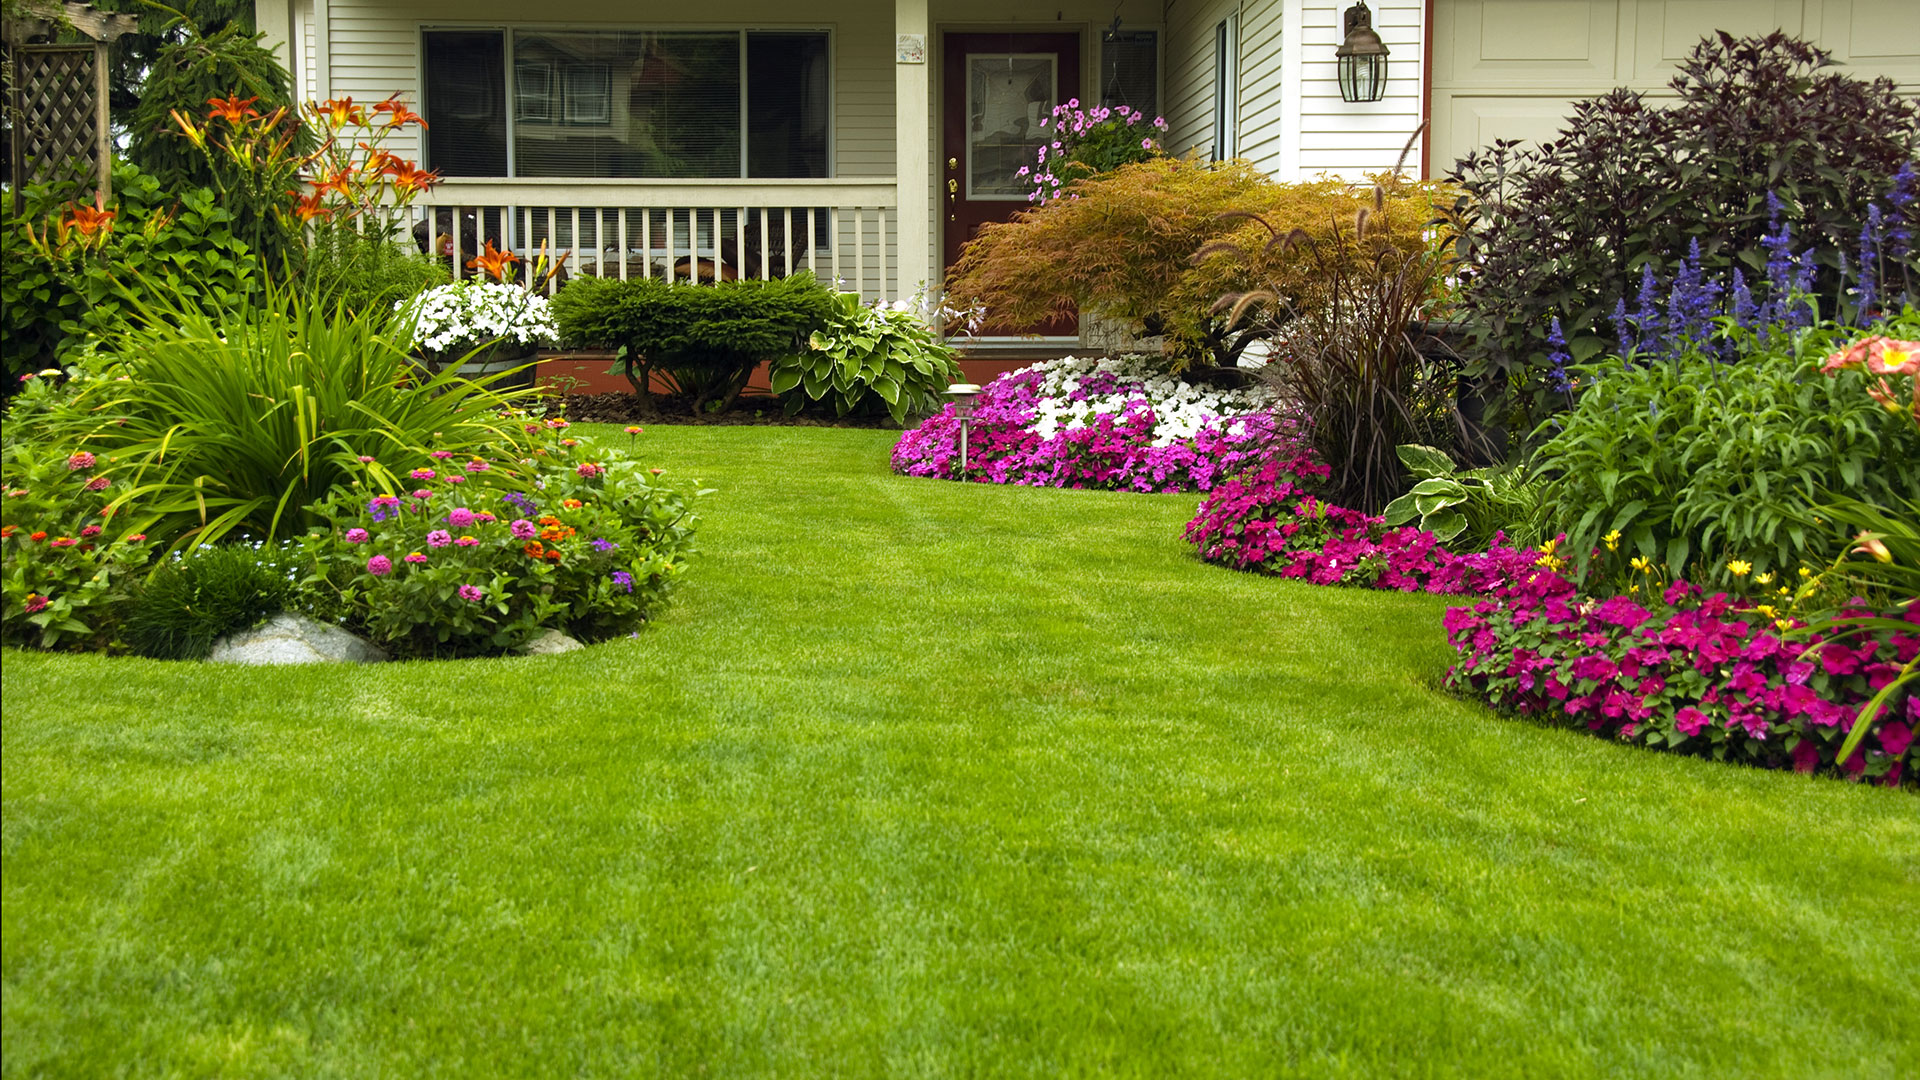 Chicago Landscaping: Residential Lawn Aeration, Lawncare Services